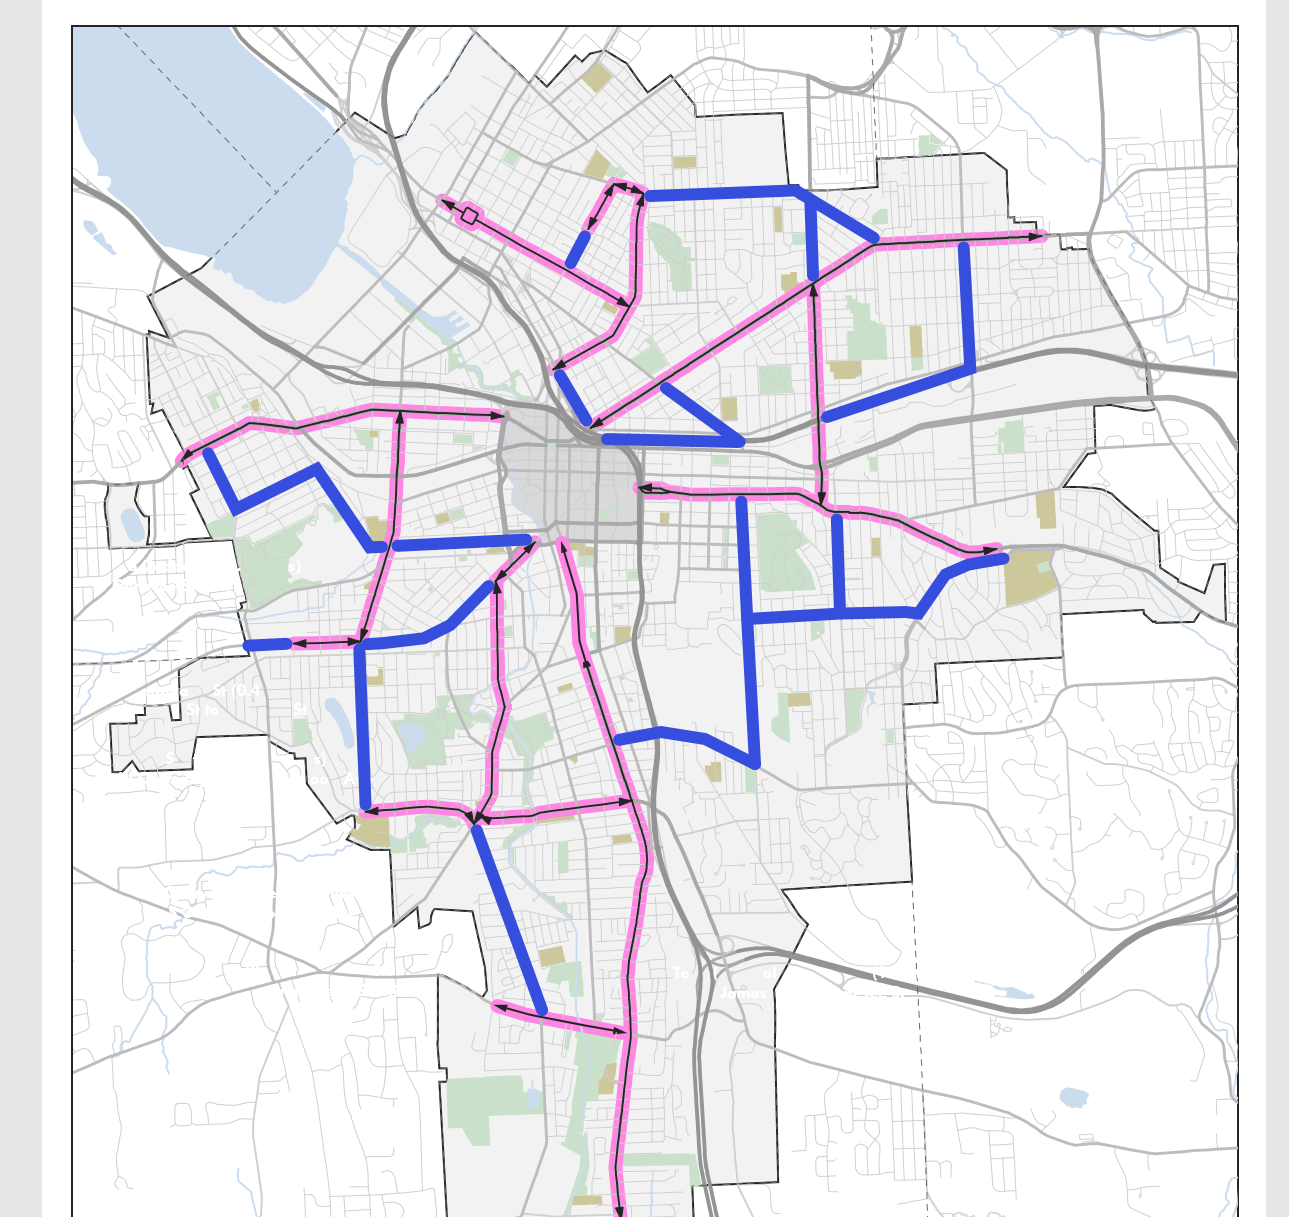 New routes are highlighted in blue, existed ones are highlighted in pink.